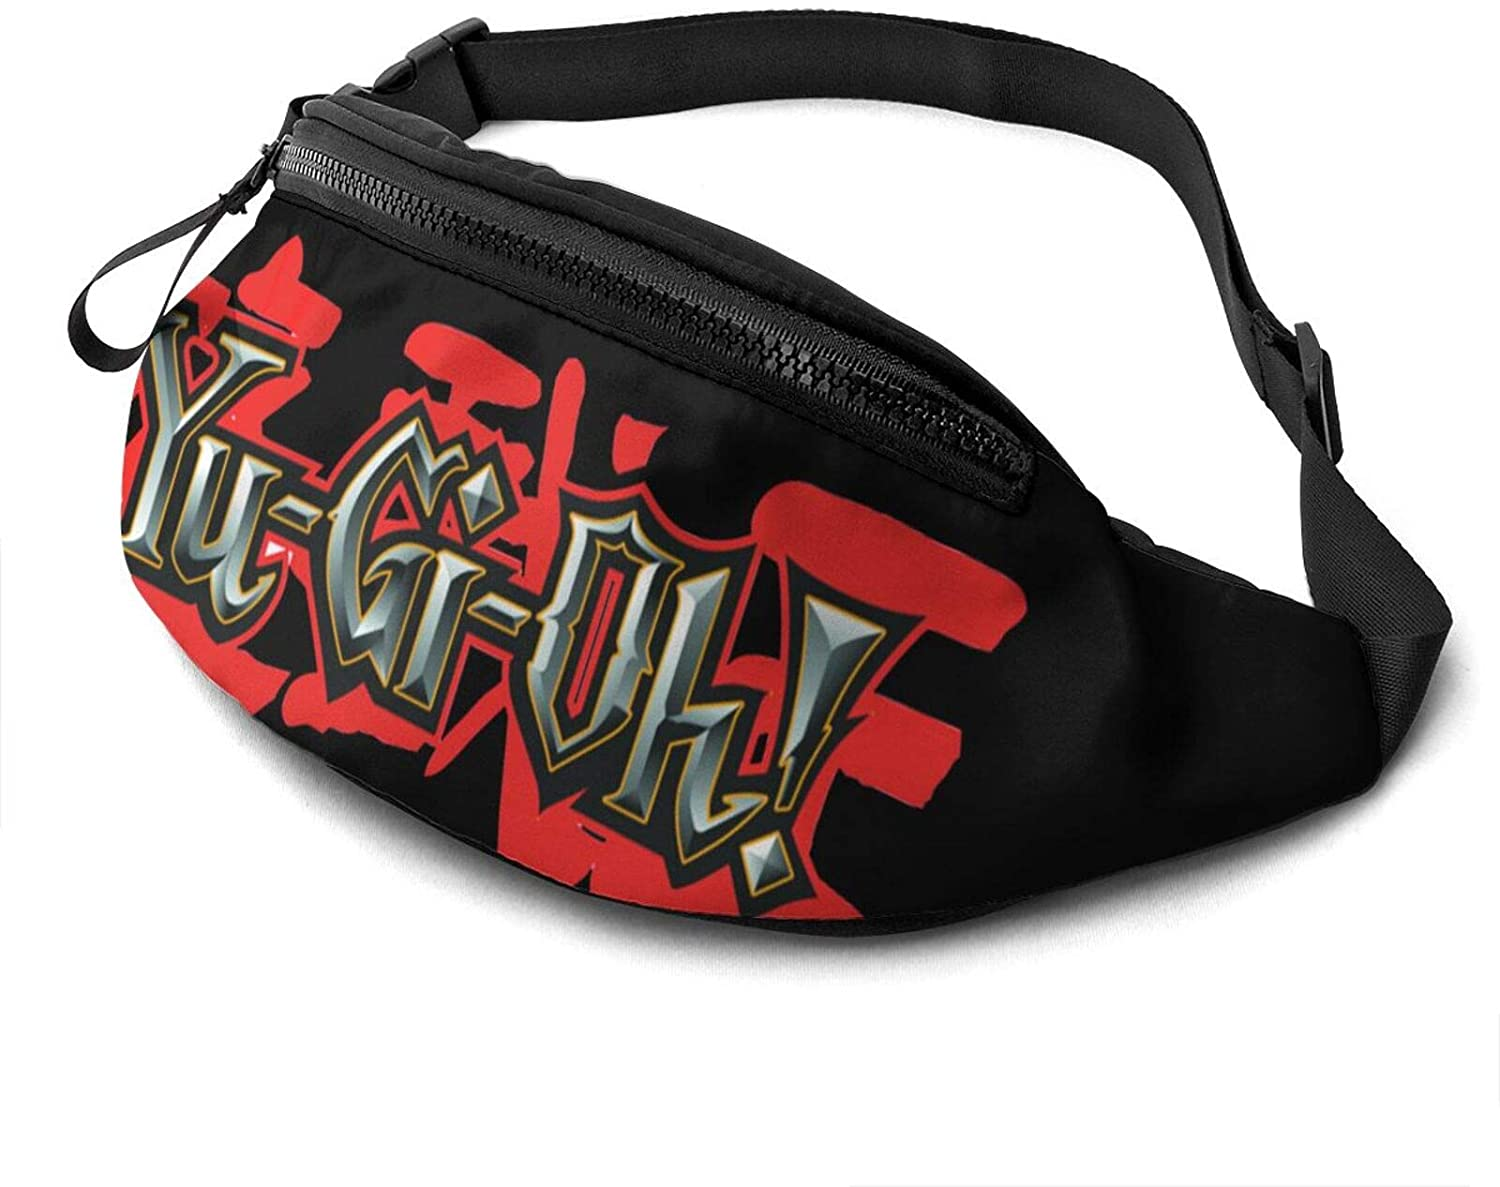 ATSH Yu-Gi-Oh Fanny Pack Running Waist Pack Bag Casual Super Lightweight Fanny Pack for Unisex